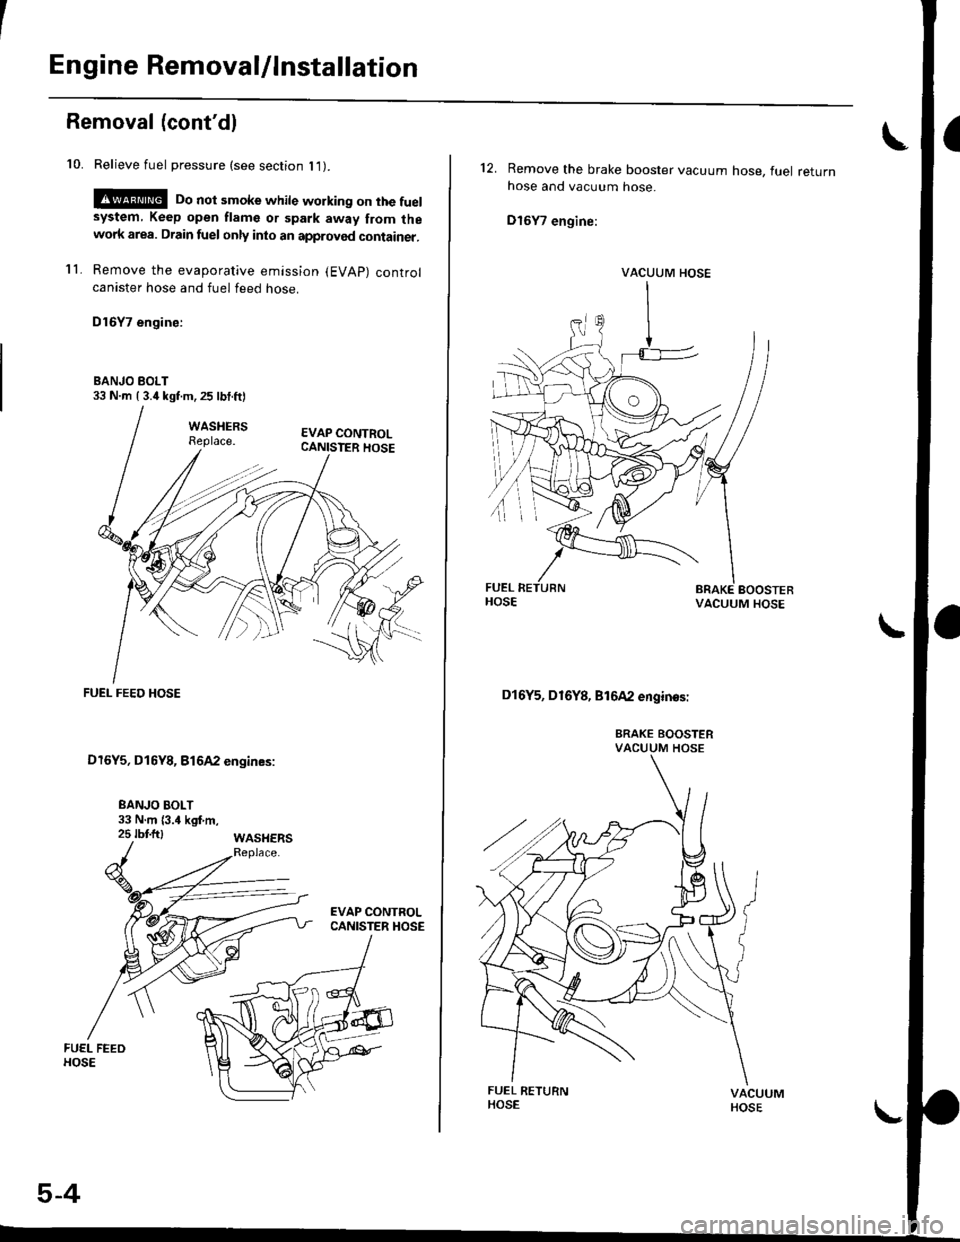 HONDA CIVIC 1997 6.G Owners Manual (2189 Pages)